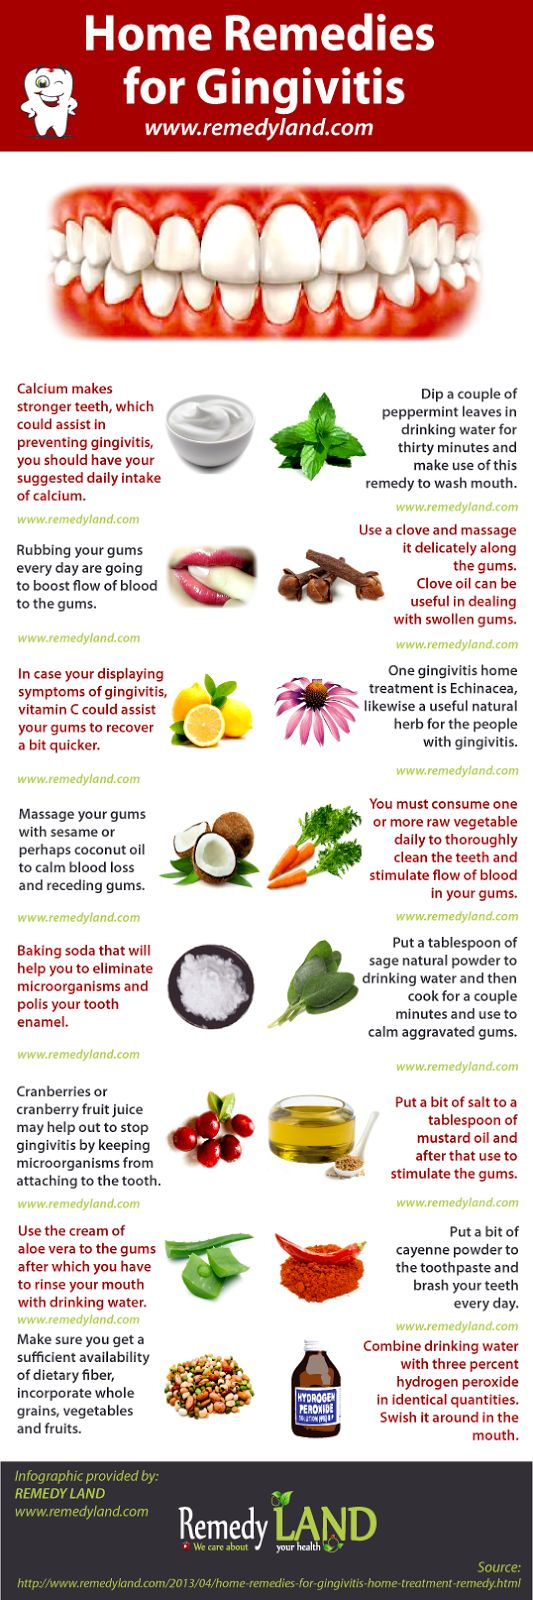 home remedies for gingivitis #gingivitis